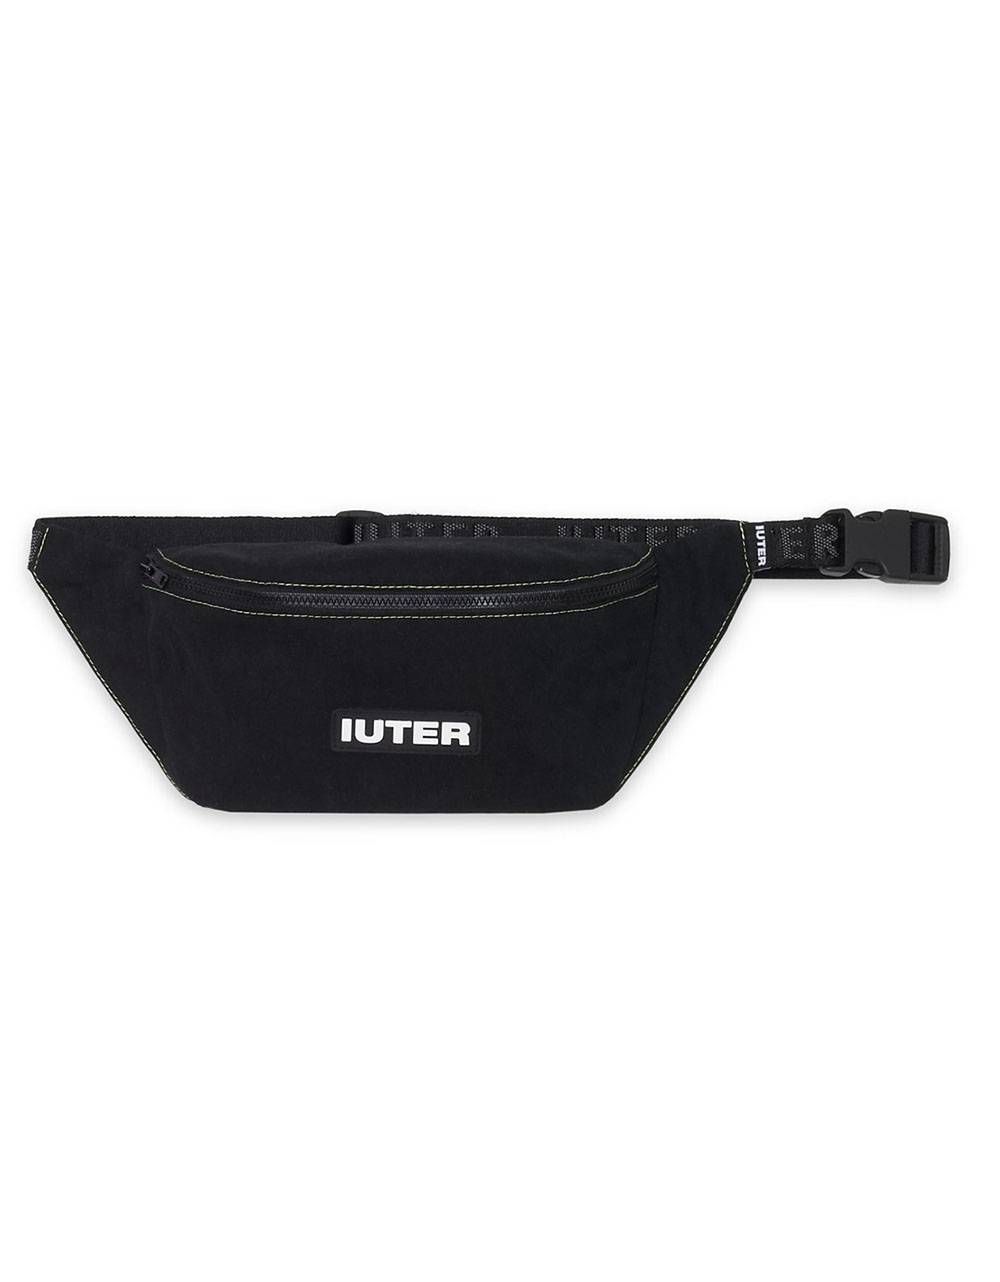 Iuter Waist pouch - black IUTER Backpack 40,98 €